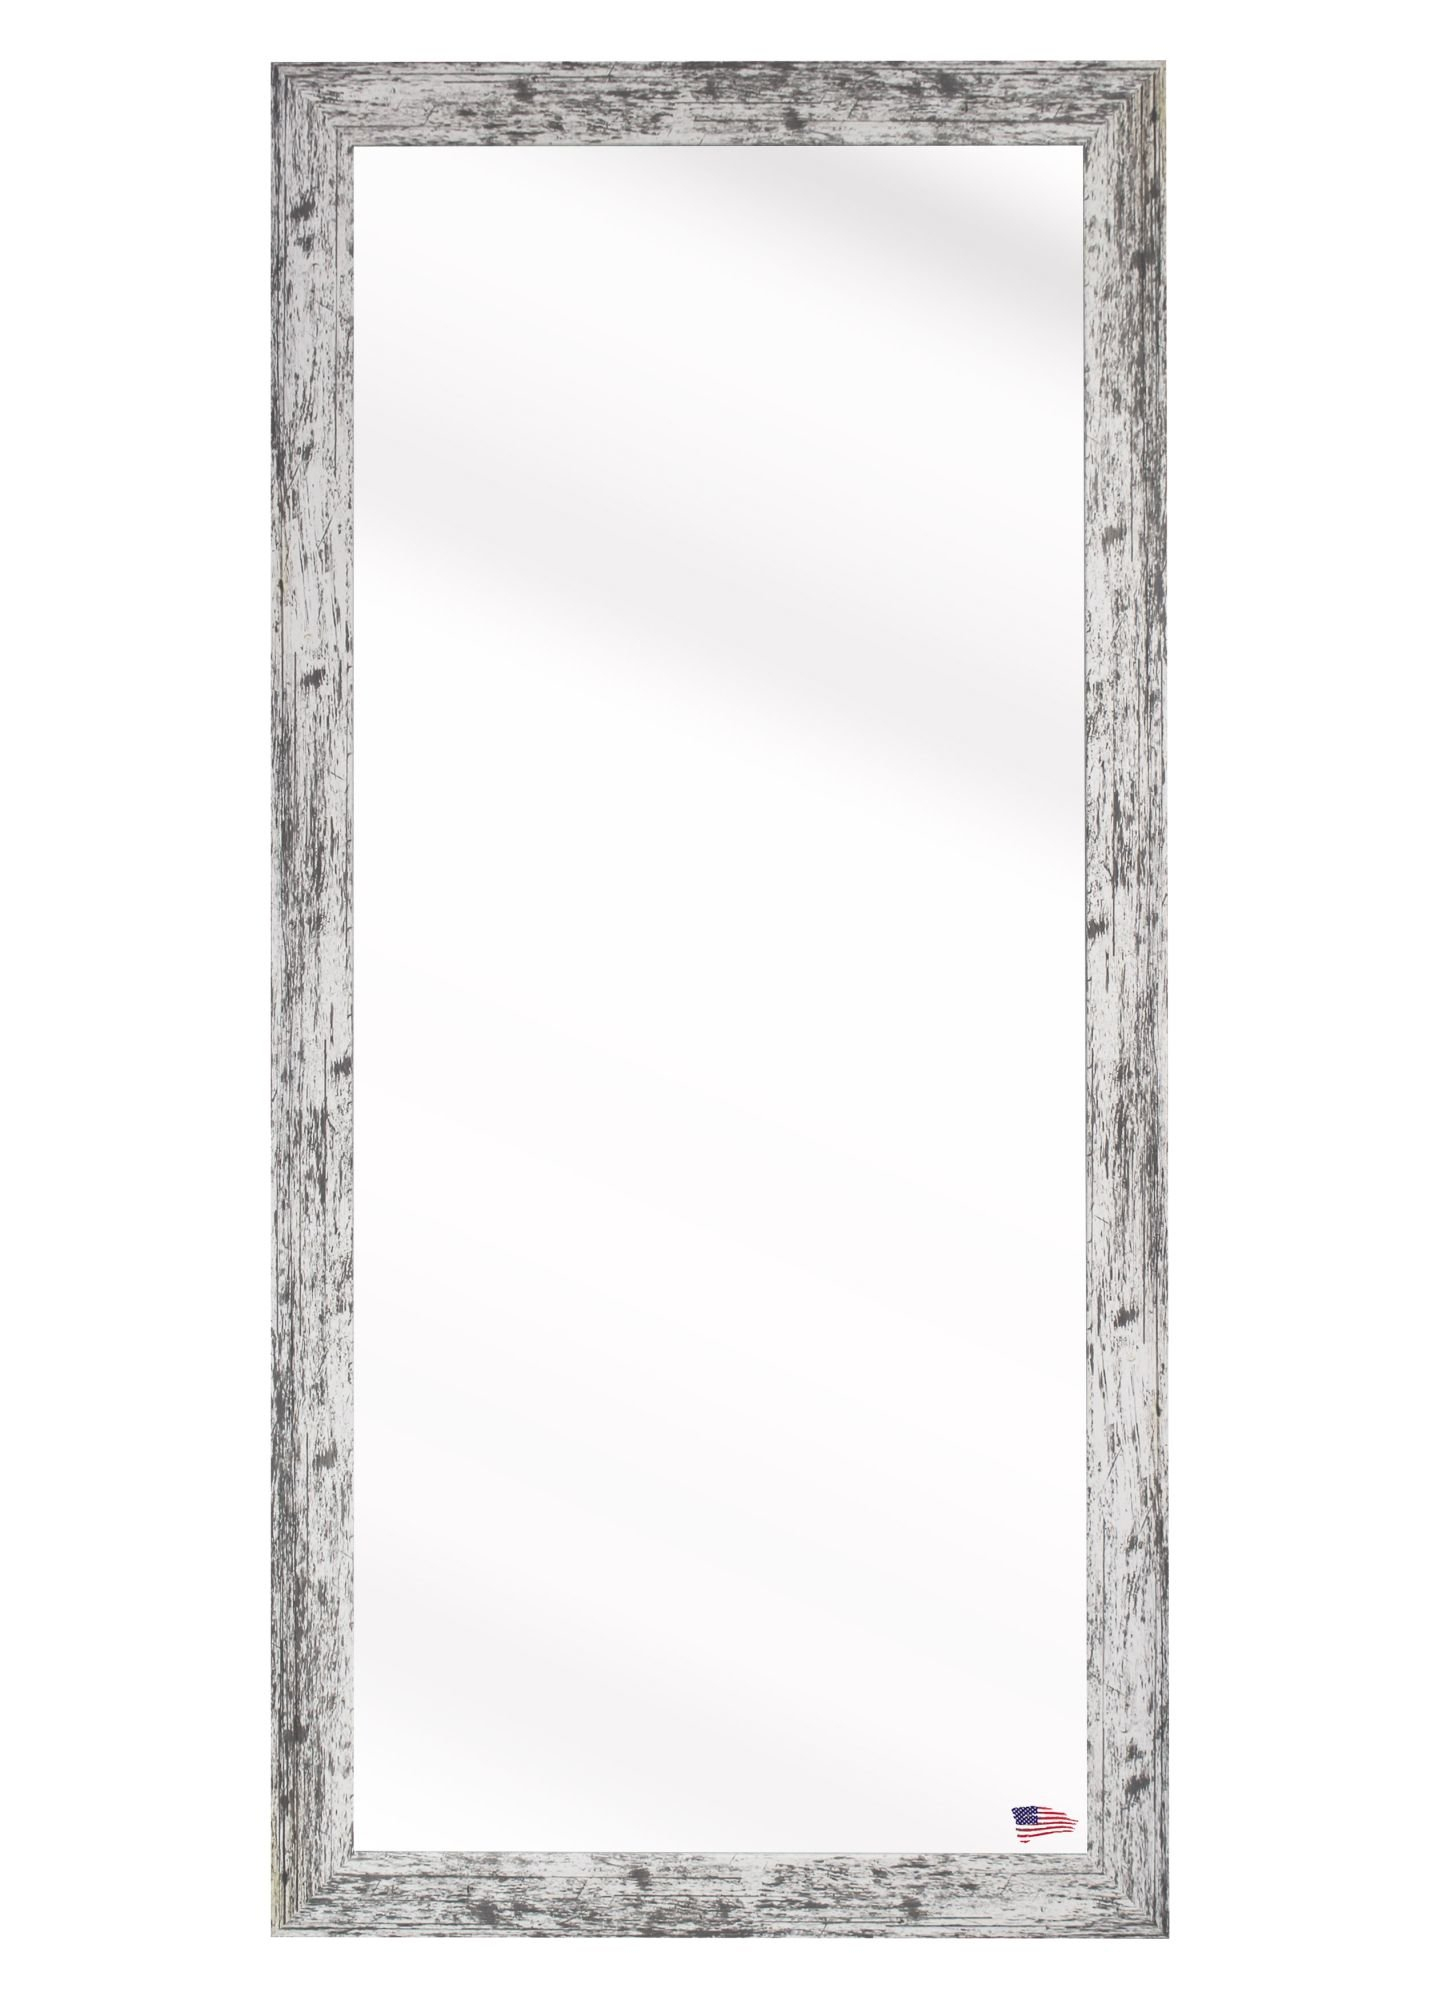 Handcrafted Farmhouse Full Length Mirror With Regard To Handcrafted Farmhouse Full Length Mirrors (View 18 of 30)